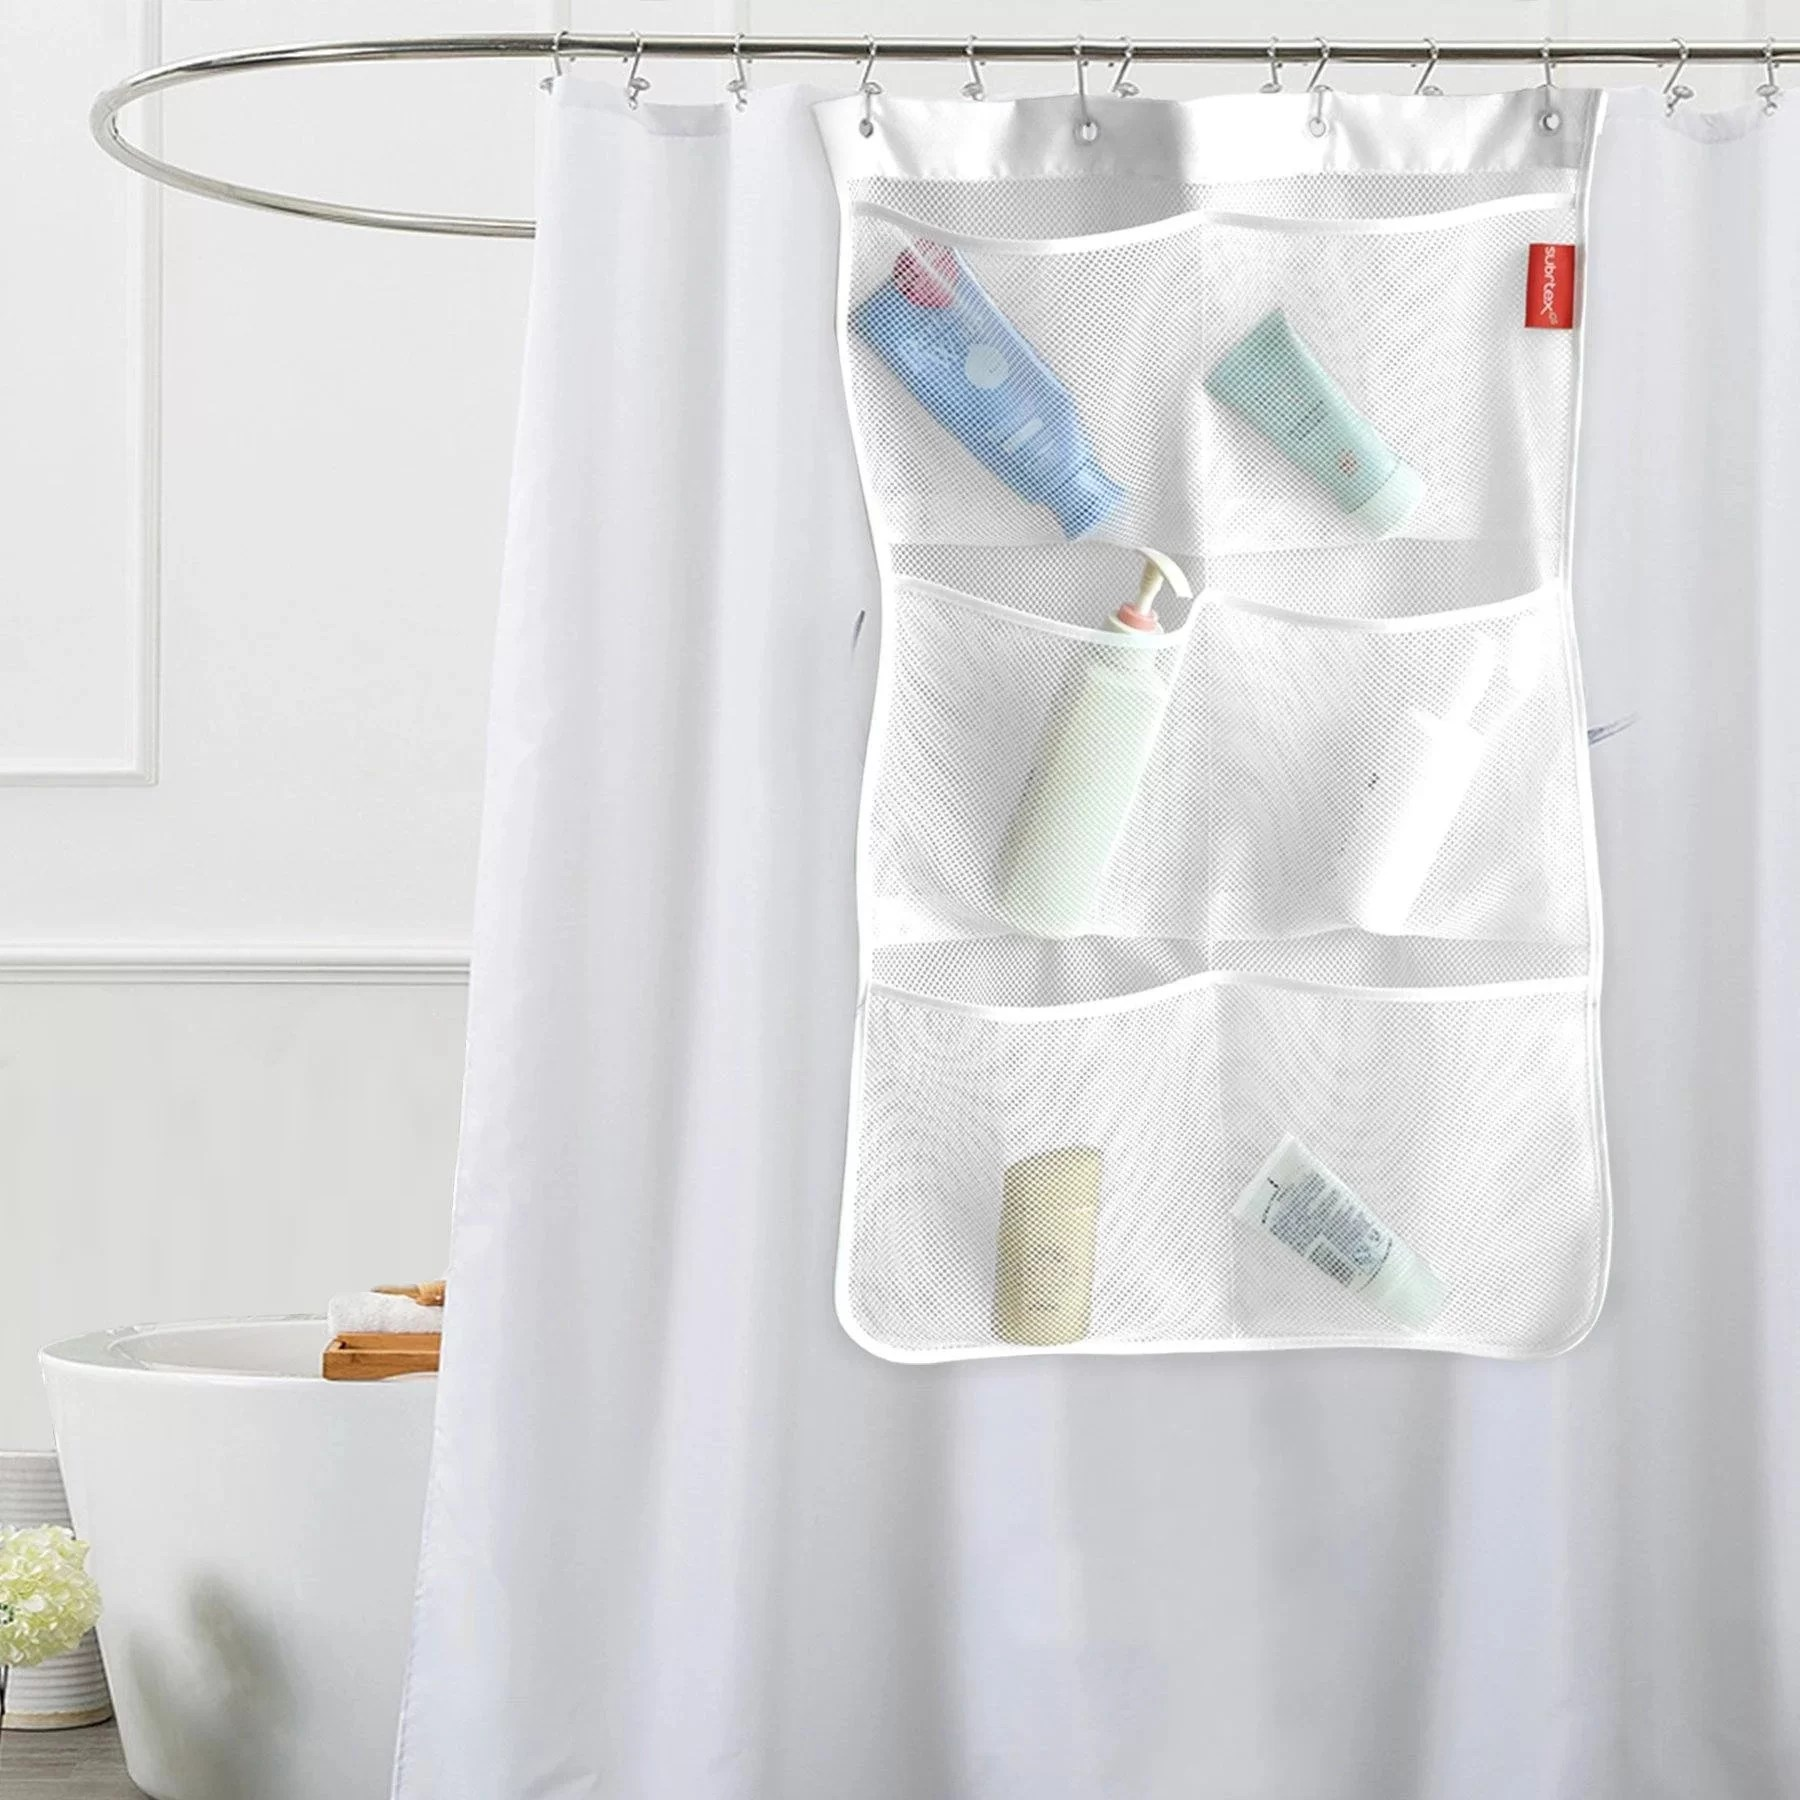 Rebrilliant Cornwall Mesh Bath Shower Caddy Reviews Wayfair Ca